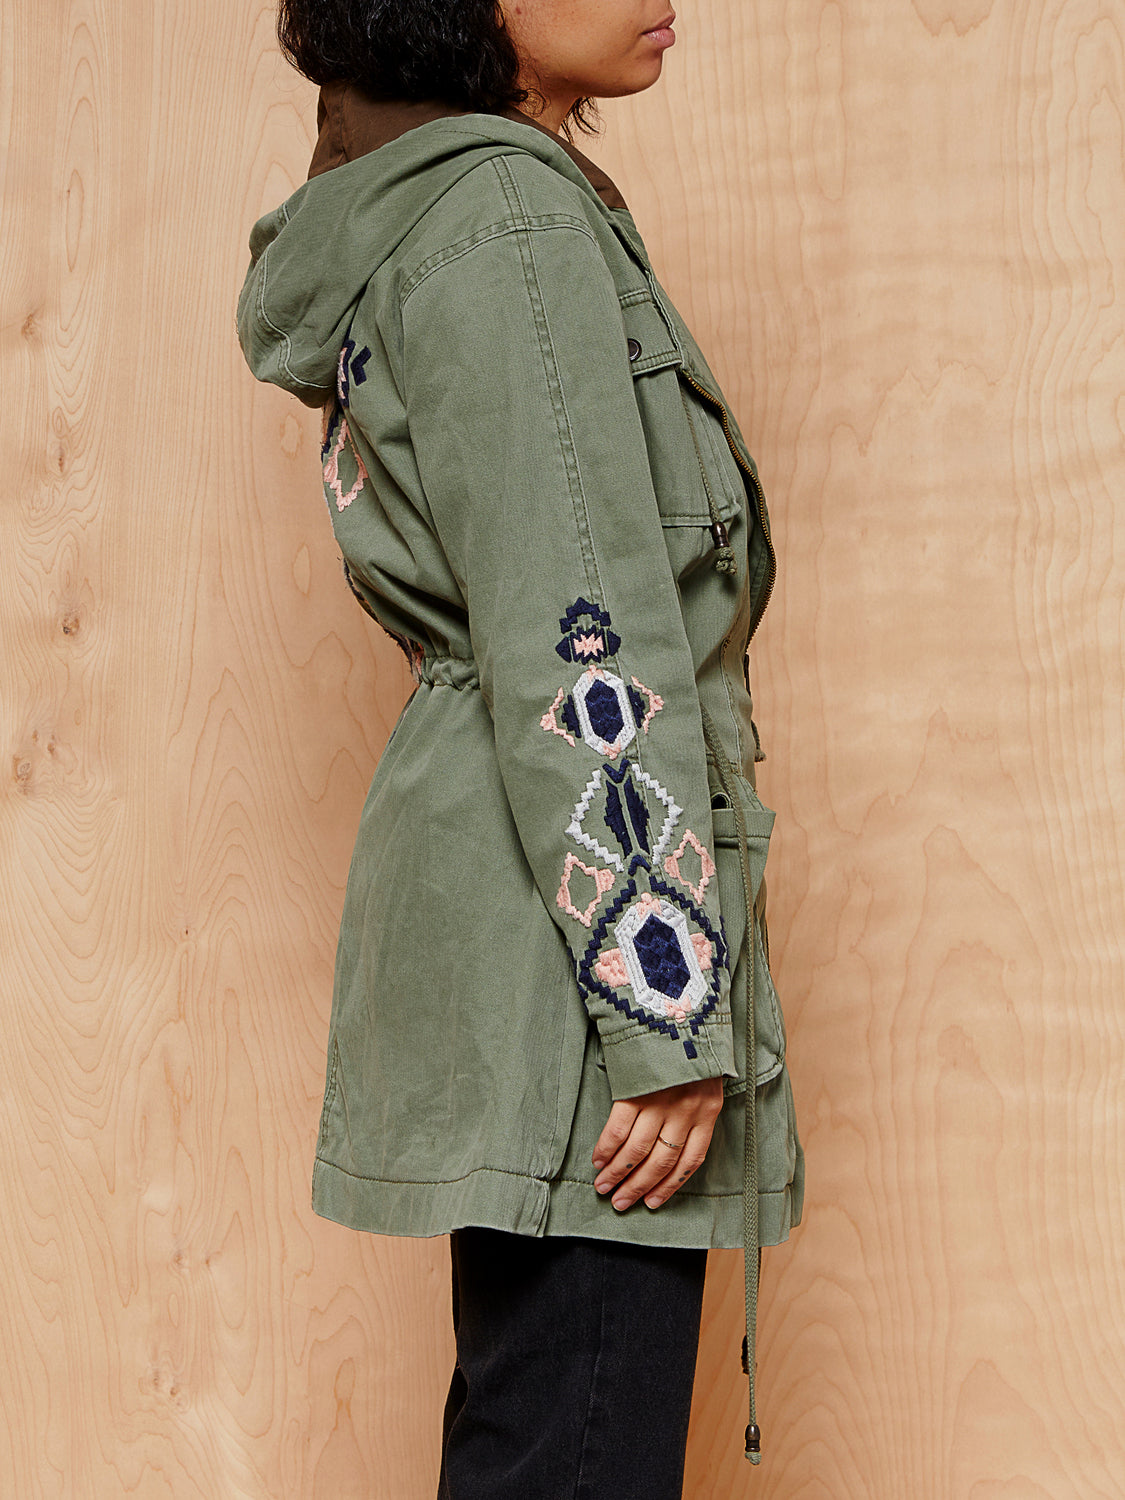 Free People Coat with Back Embroidery